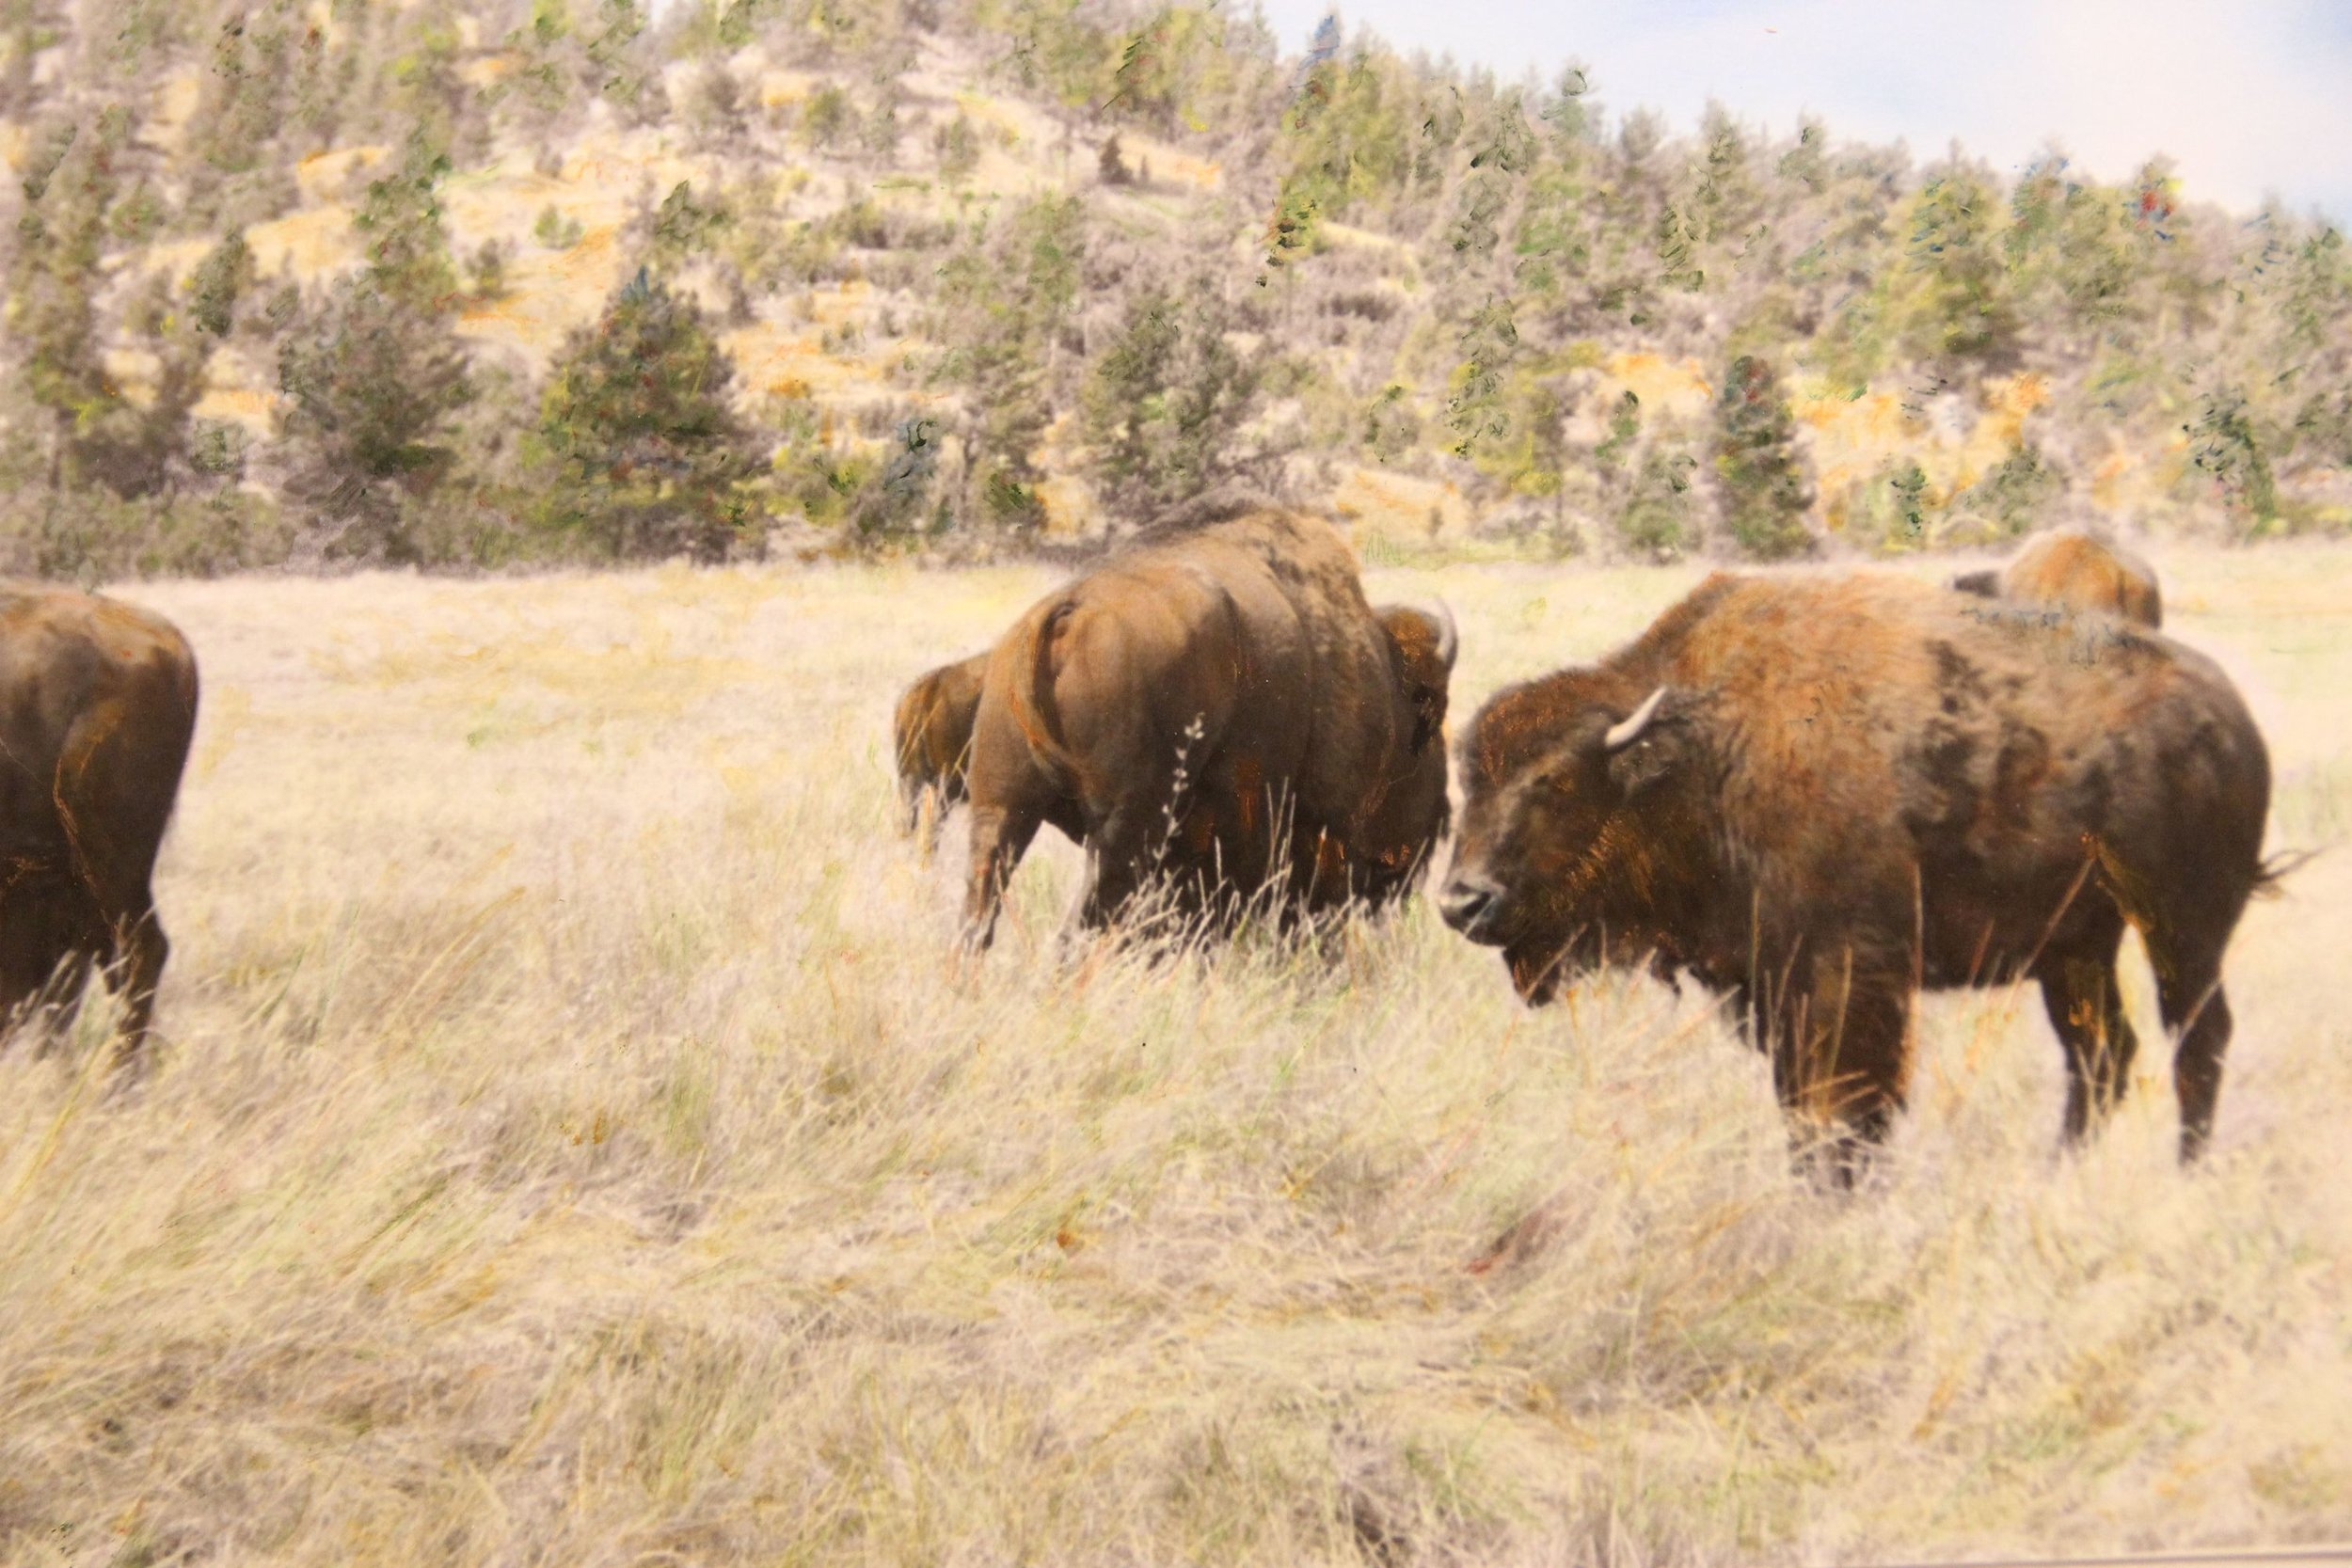 """""""Buffalo (Custer)"""" by Judy Rosati, 16x20in, hand colored silver gelatin photograph (2015), $125 (matted & framed)